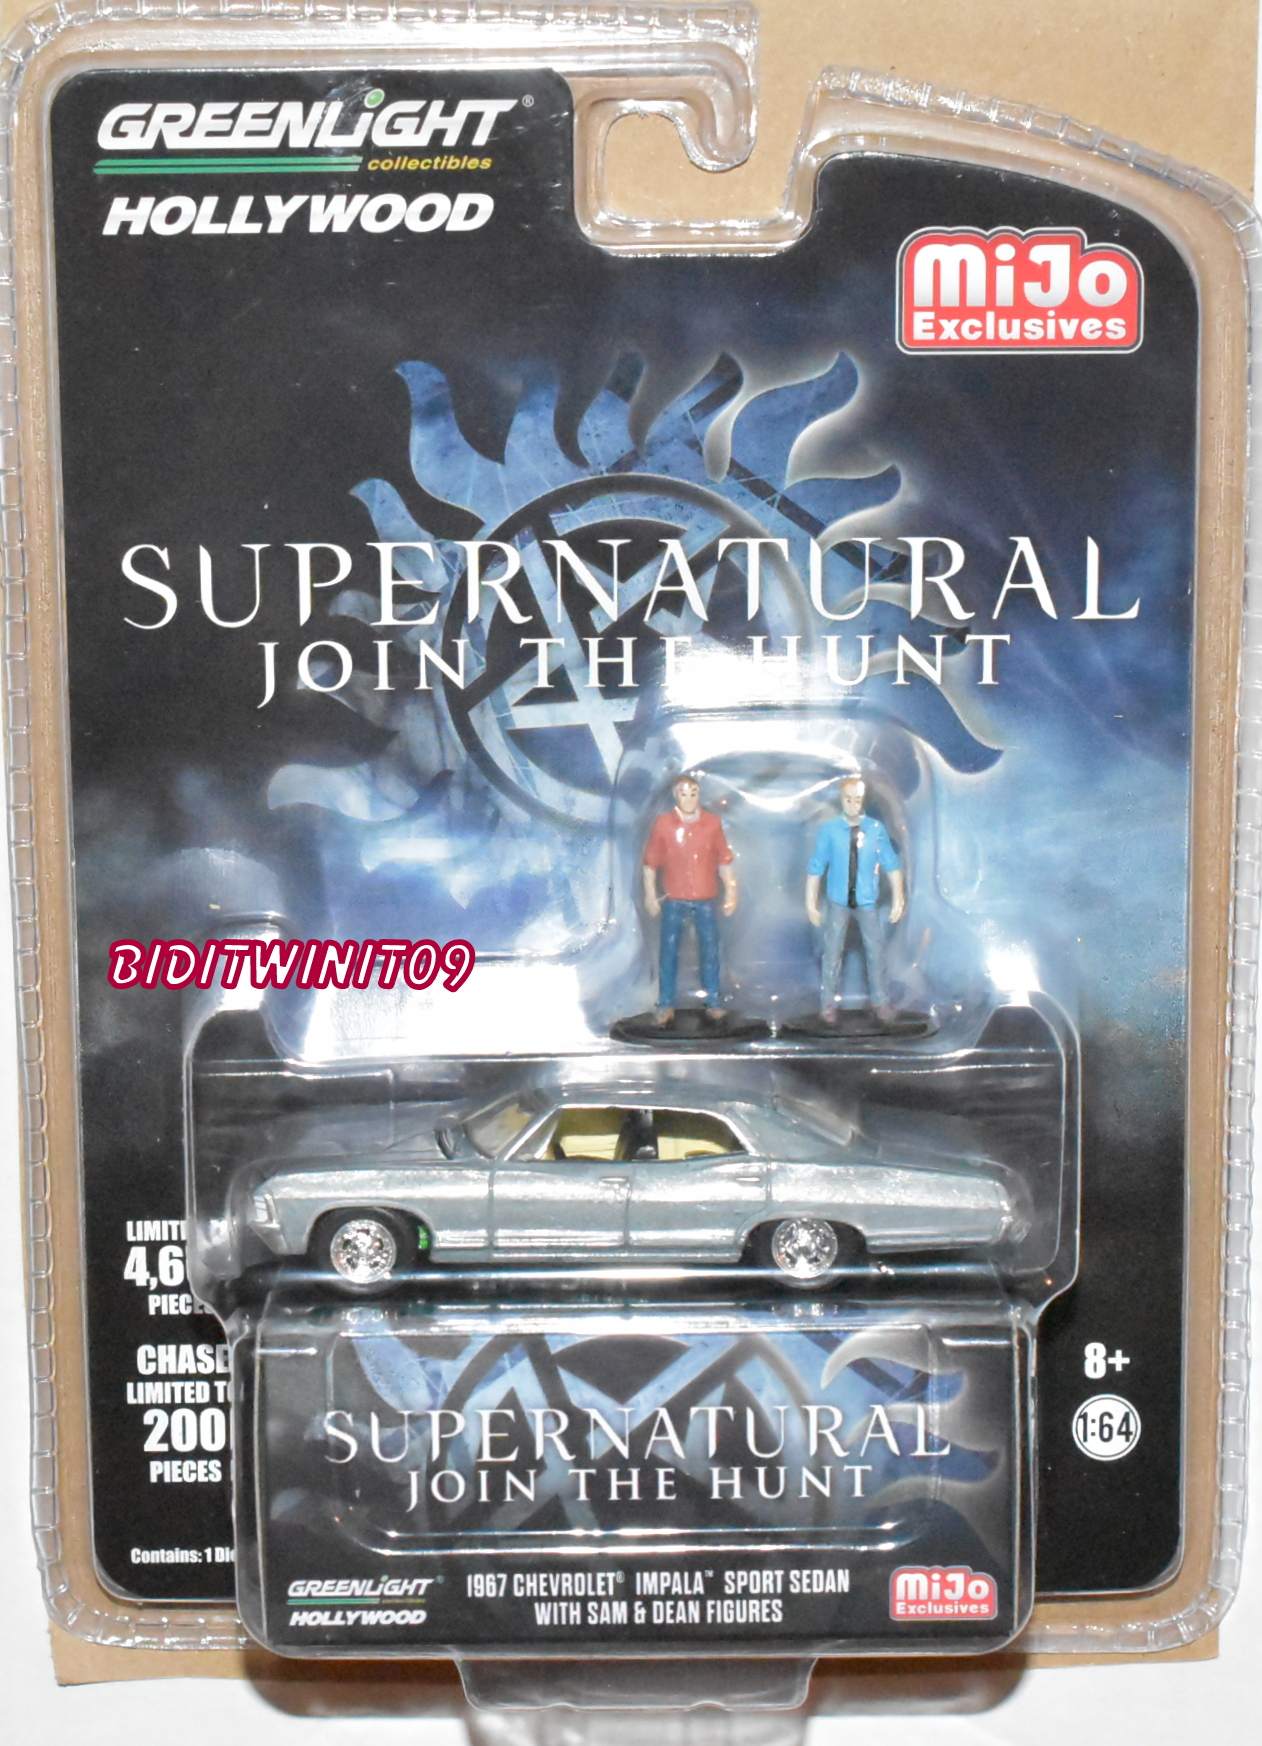 GREENLIGHT 2018 1967 CHEVY IMPALA W/ FIGURES SUPERNATURAL MIJO ZAMAC CHASE